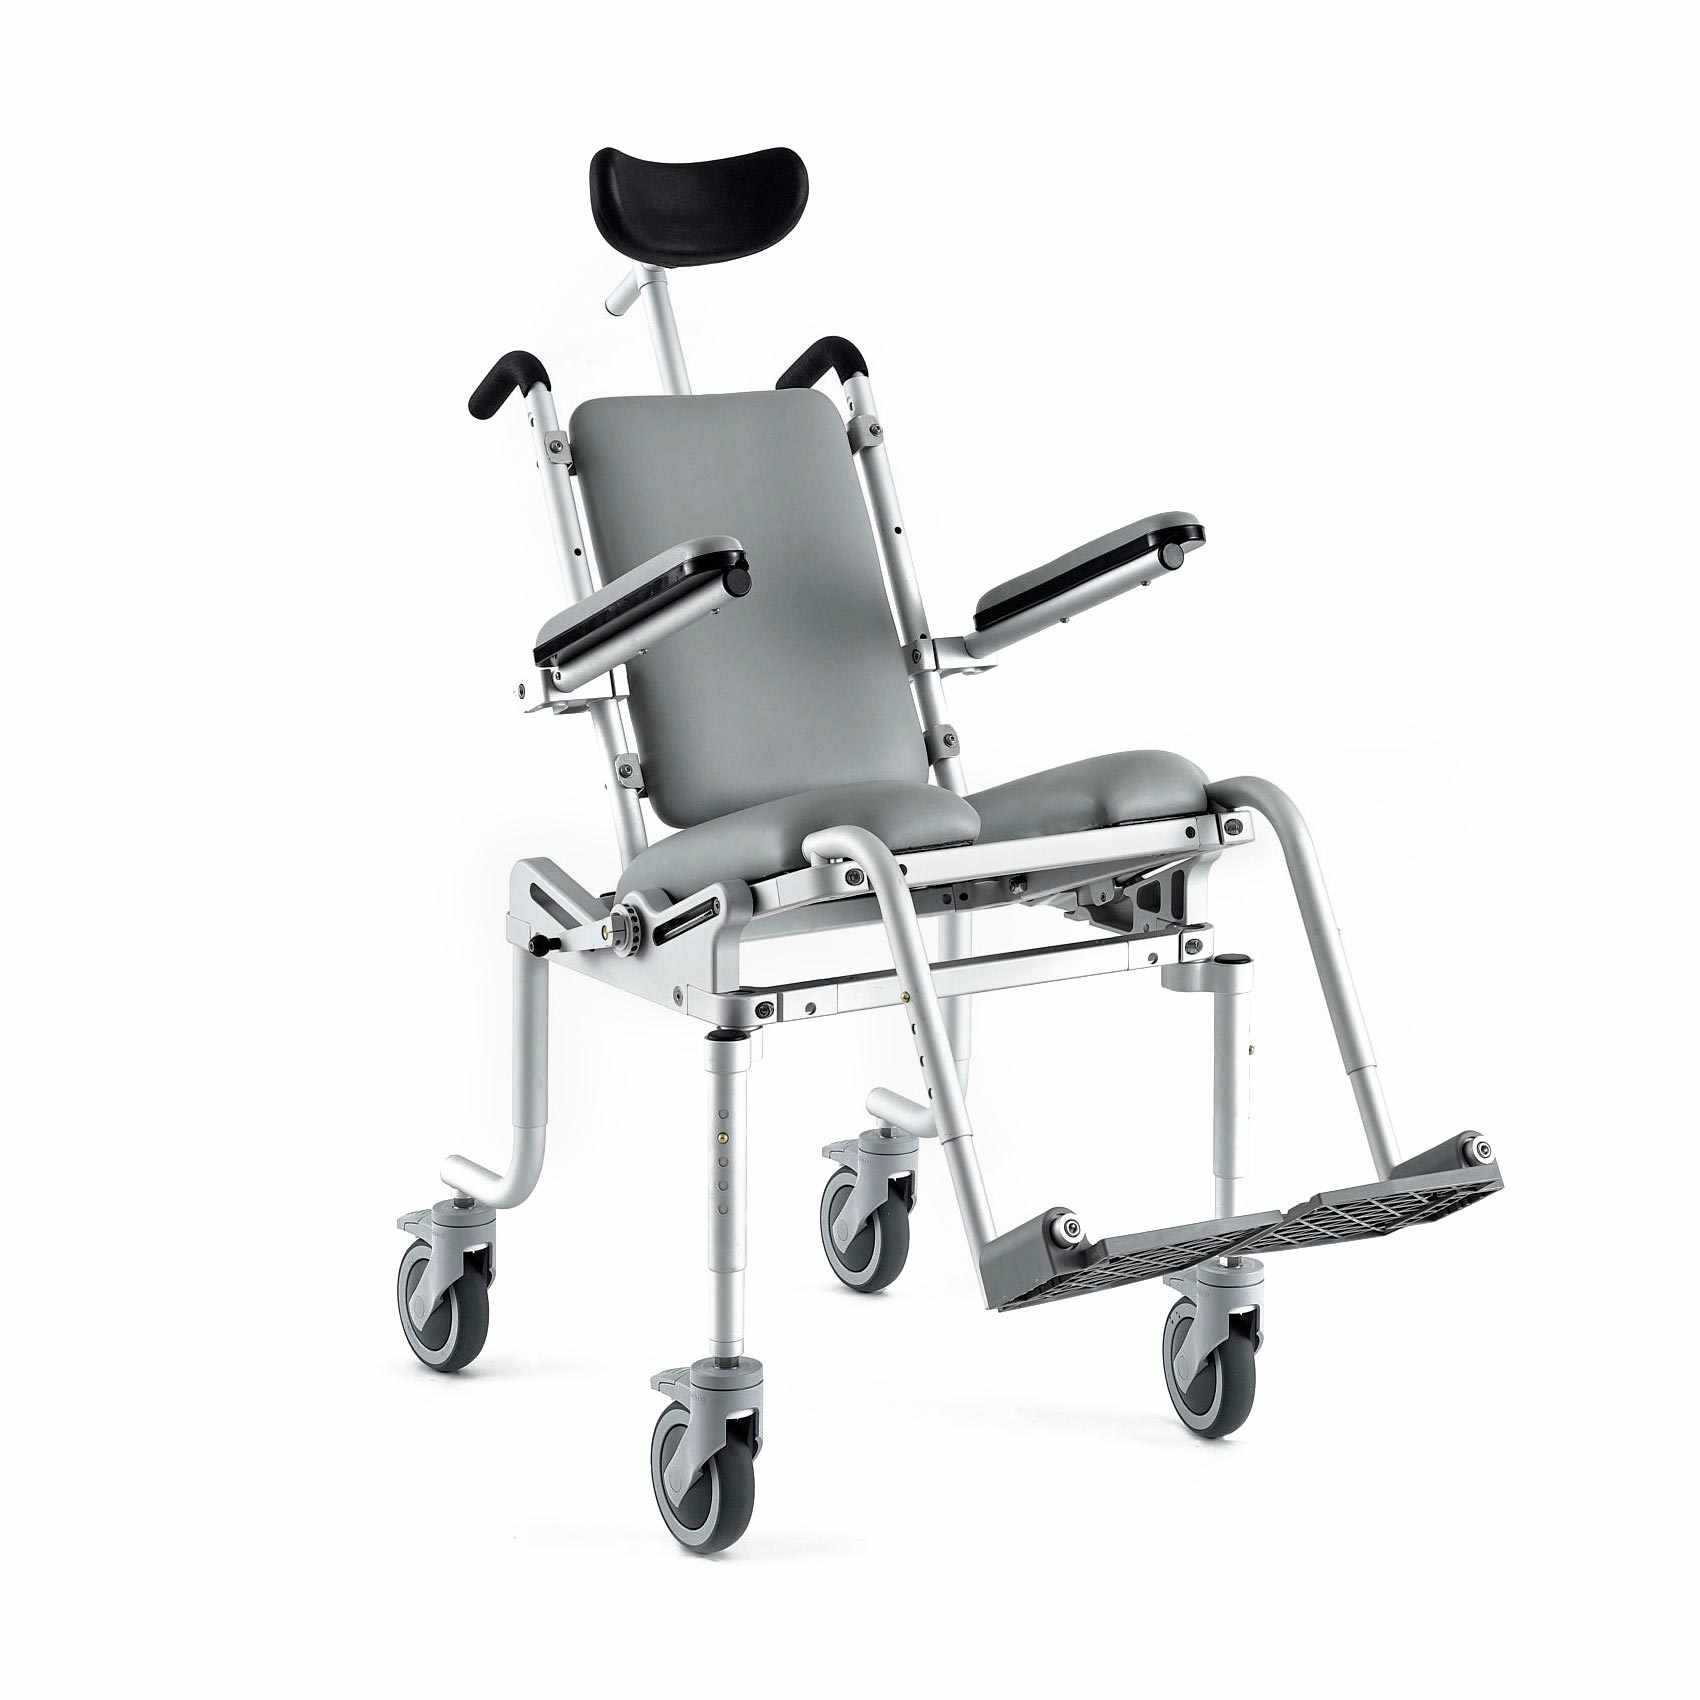 Nuprodx Multichair 4000Tilt Pediatric Roll-In-Shower Commode Chair